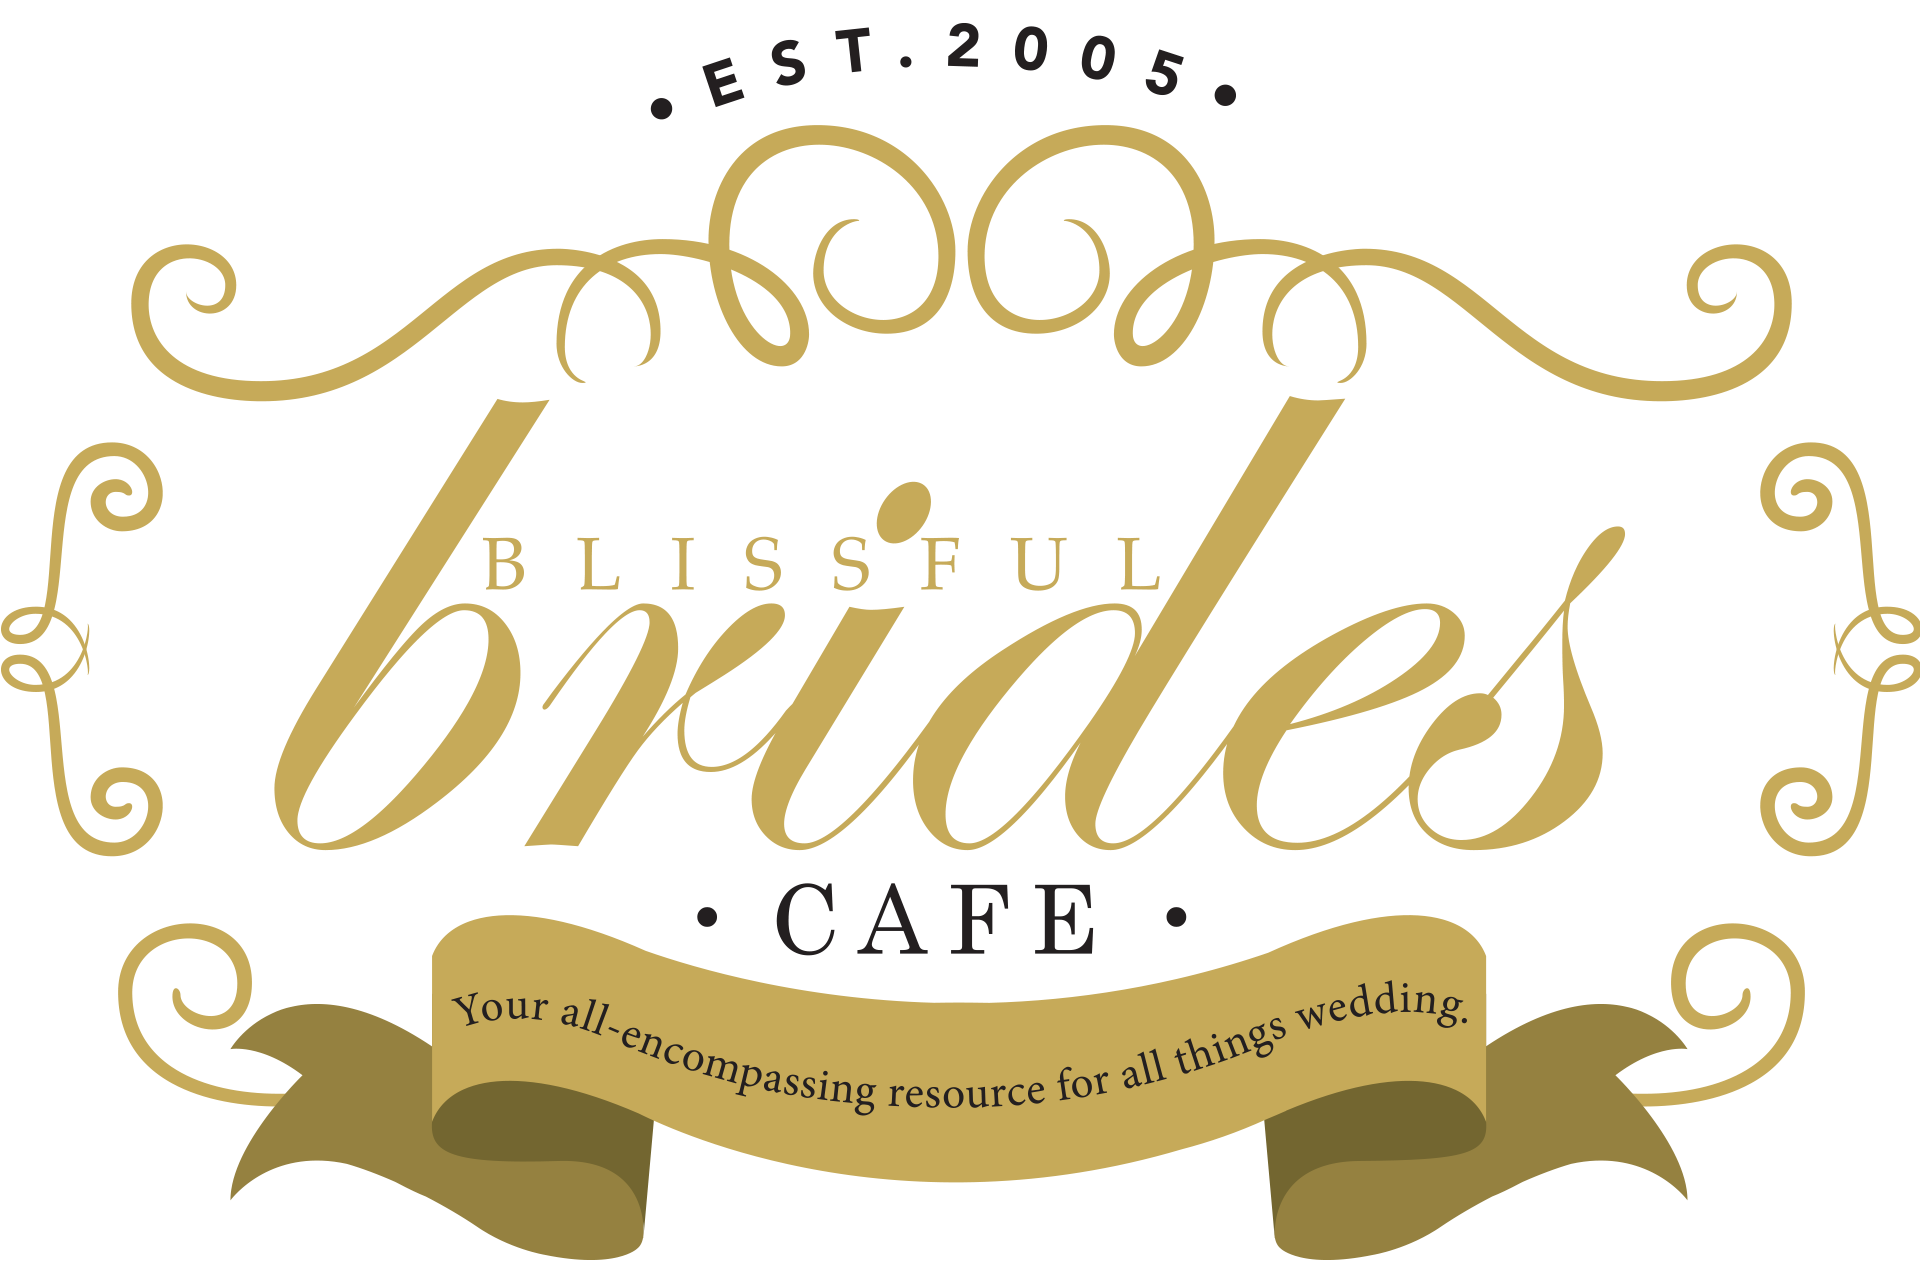 Blissful brides Cafe